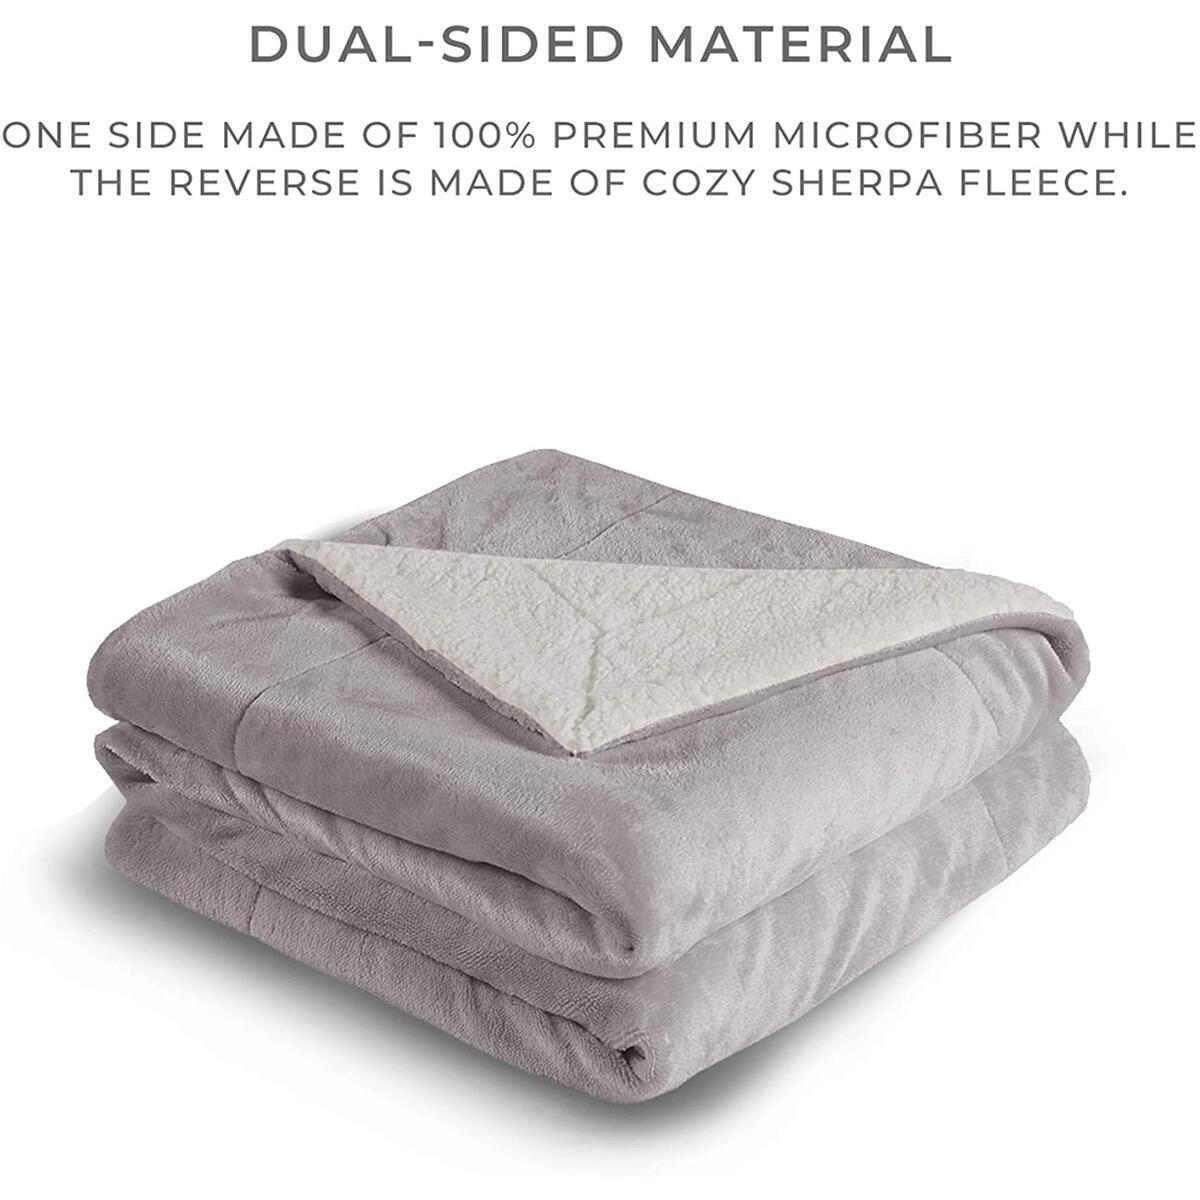 Soft Sherpa Fleece King Size Plush Blanket, Fuzzy Plush Cozy Flannel Reversible Blanket for Sofa, Couch, Bed - 108x90 Inches, Grey